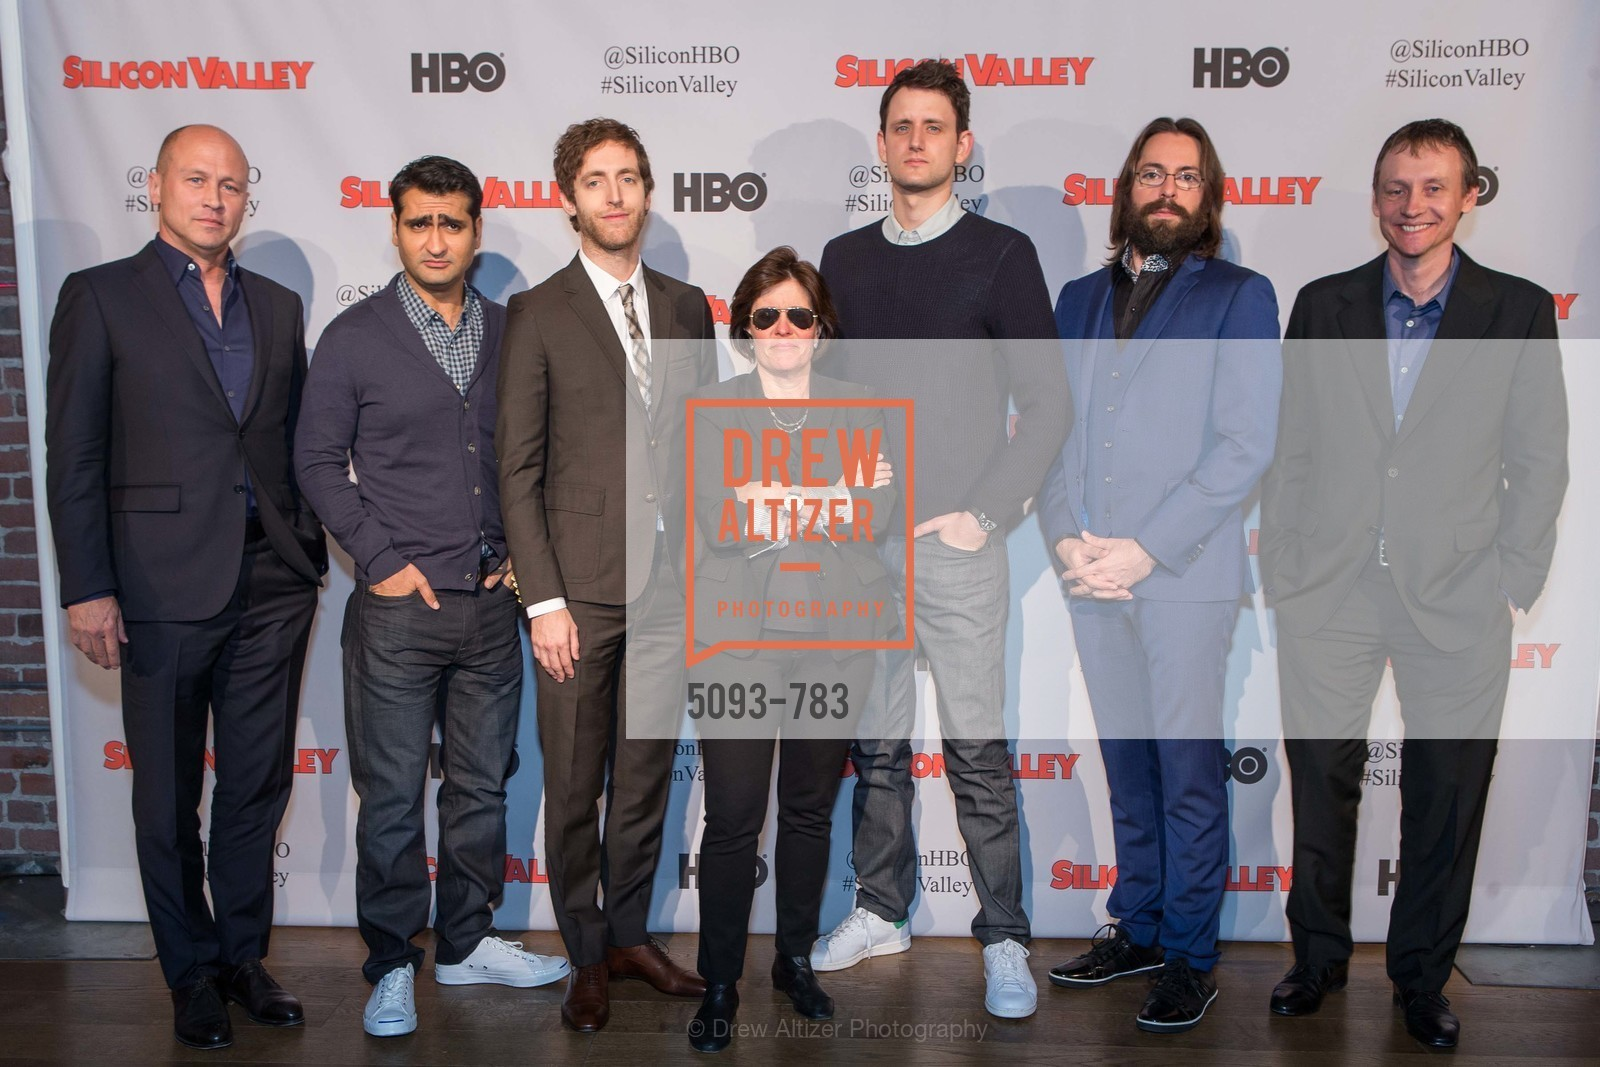 Mike Judge, Kumail Nanjiani, Thomas Middleditch, Kara Swisher, Zach Woods, Martin Starr, Alec Berg, HBO'S SILICON VALLEY San Francisco Screening, US, April 8th, 2015,Drew Altizer, Drew Altizer Photography, full-service agency, private events, San Francisco photographer, photographer california